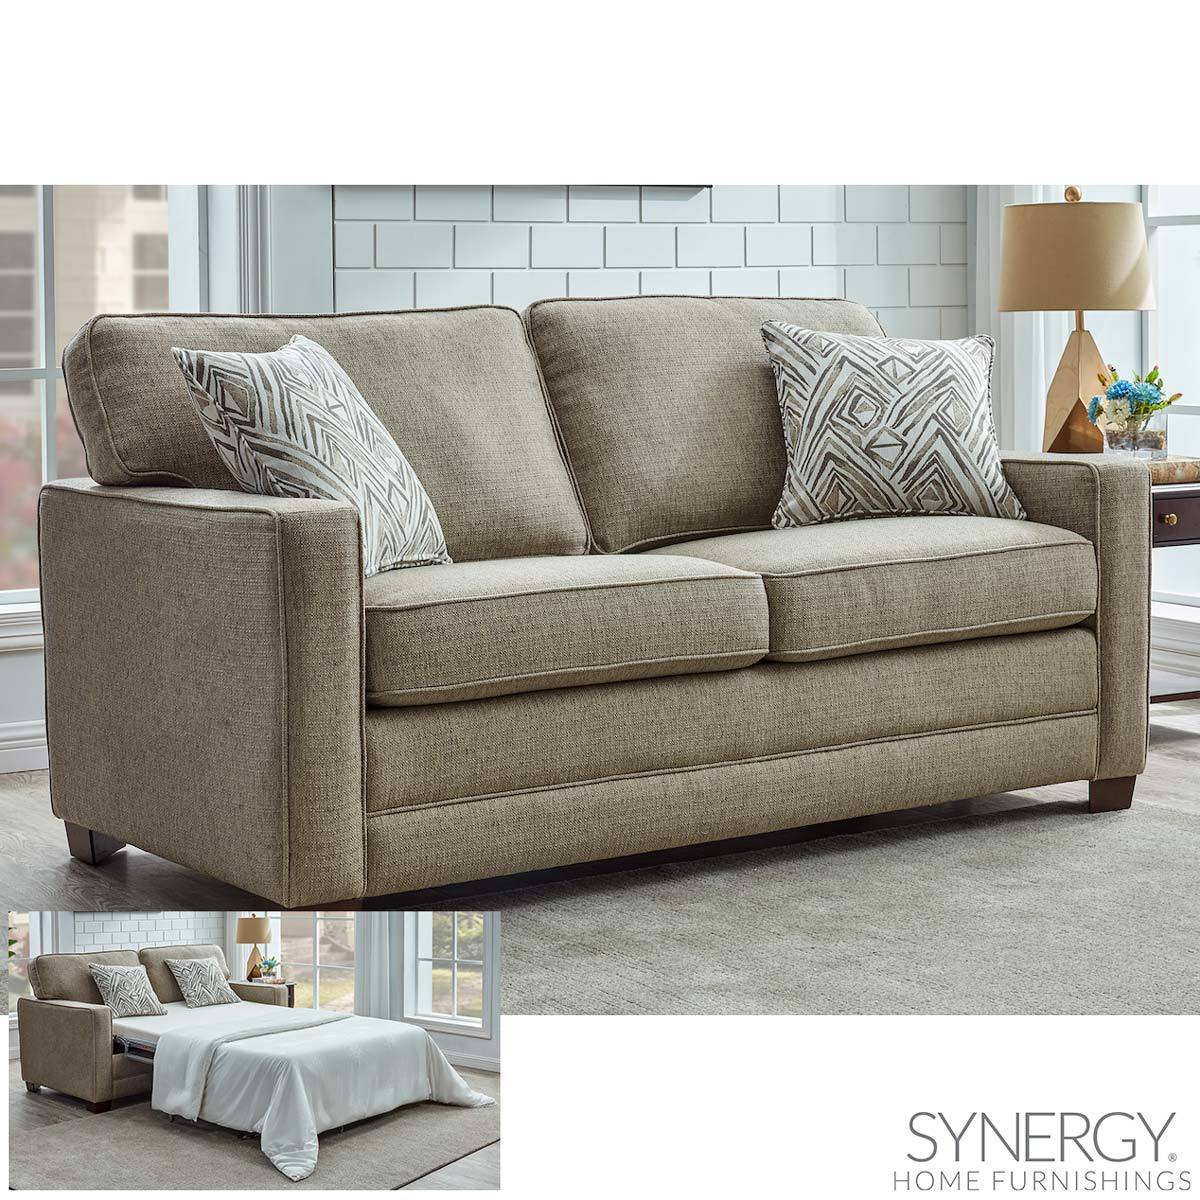 Landree Fabric Full Size Sleeper Sofa Bed With 2 Accent ...